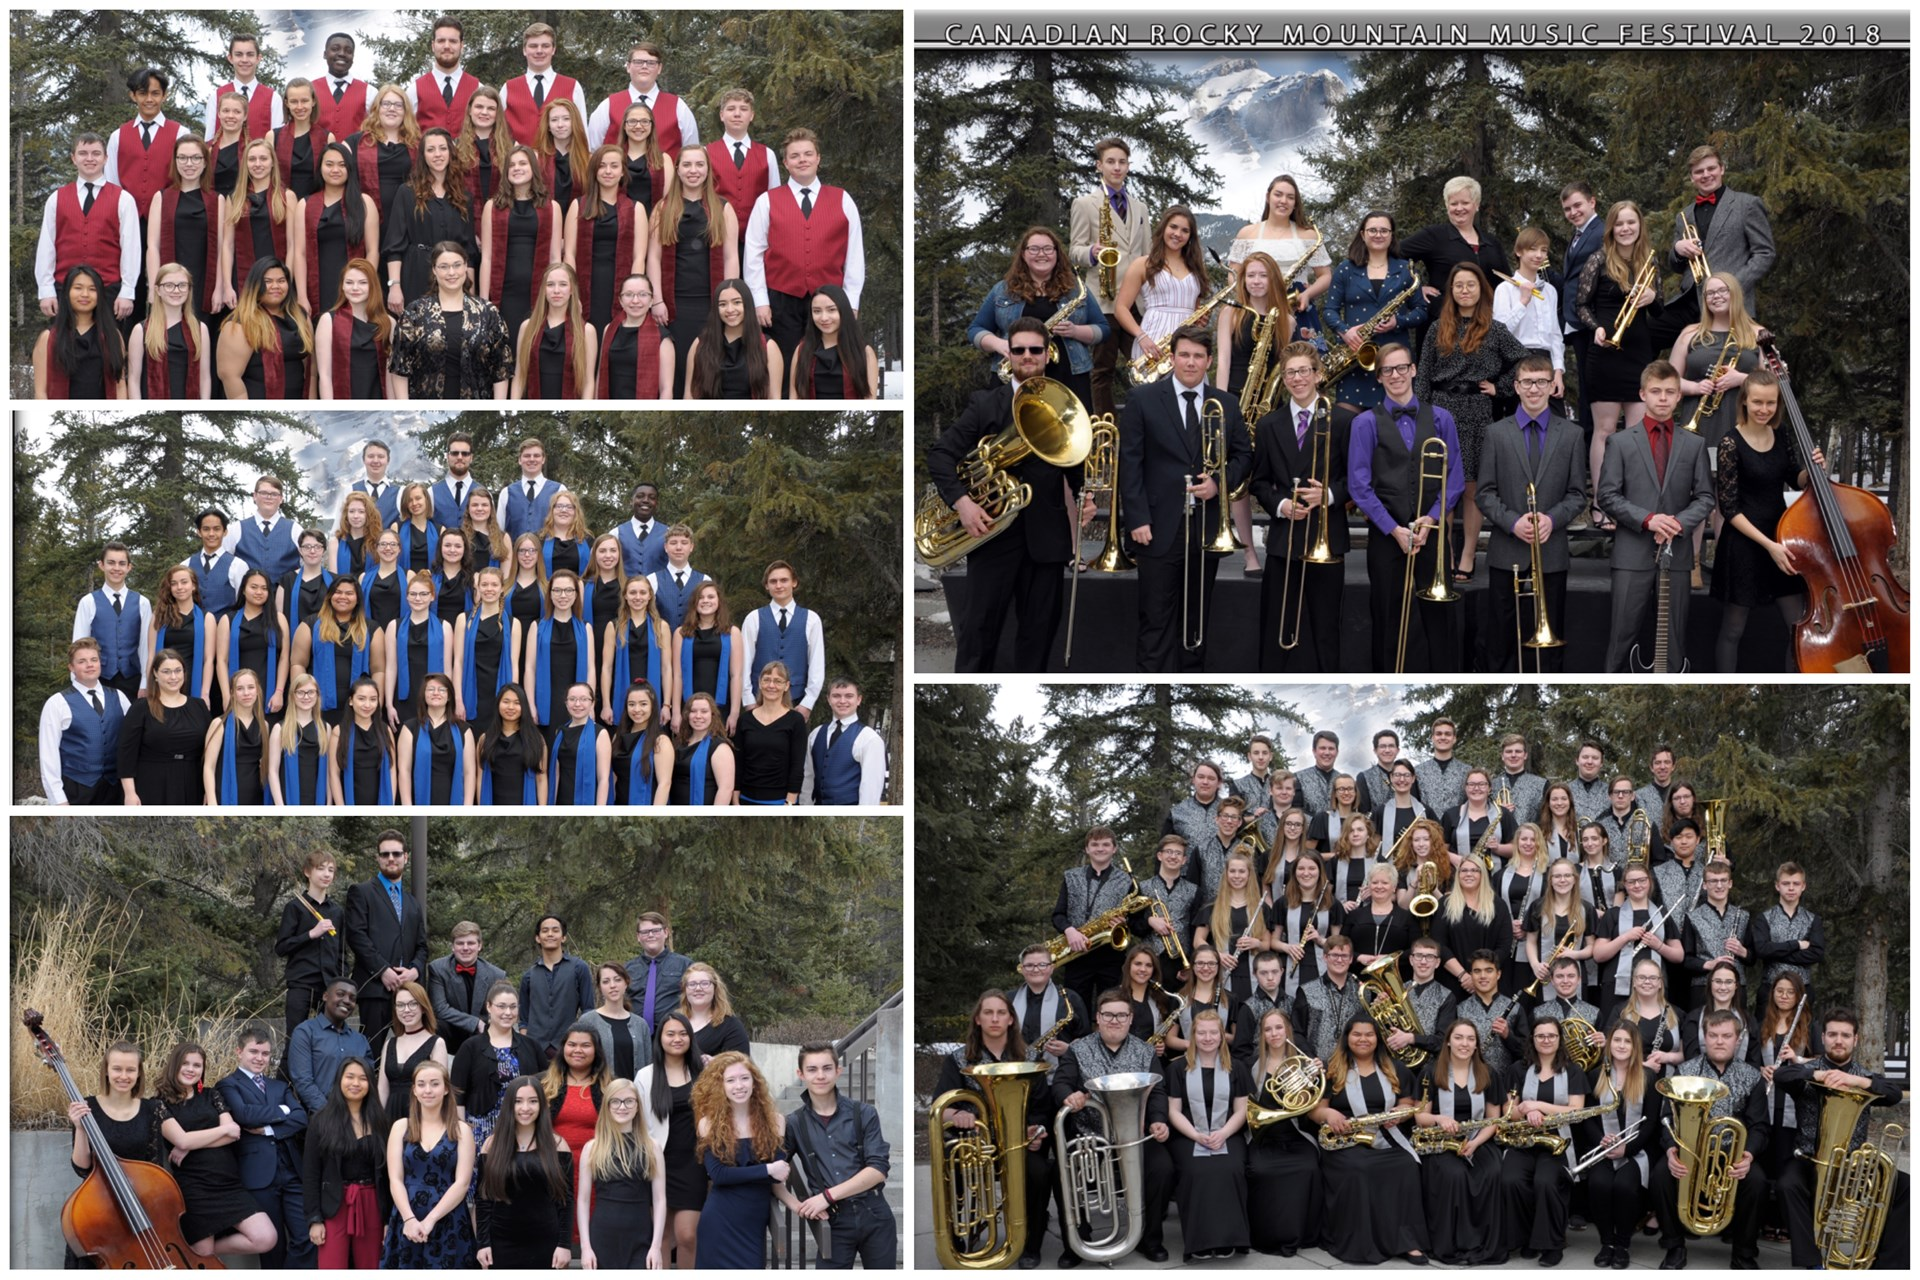 SCCHS Music Department performs at music festival in Banff